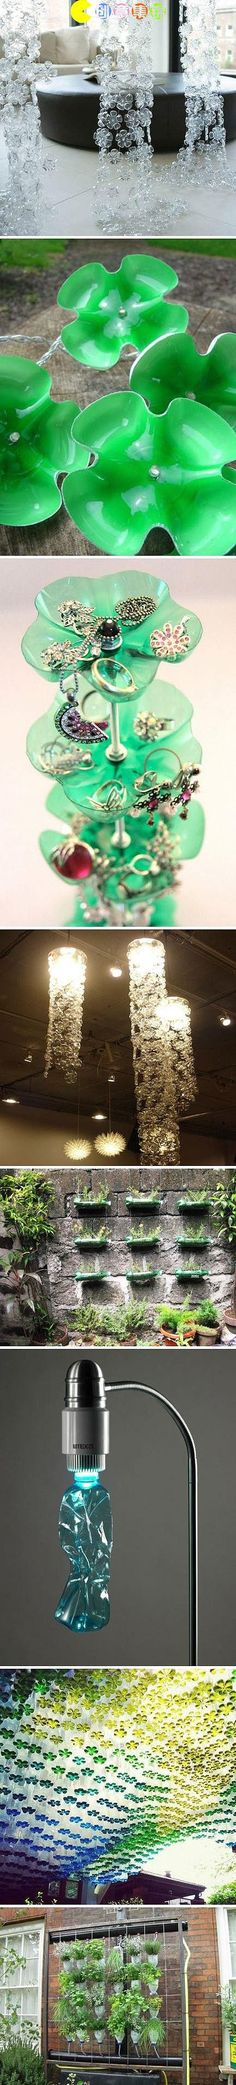 beauty from trash-upcycle plastic bottles craft